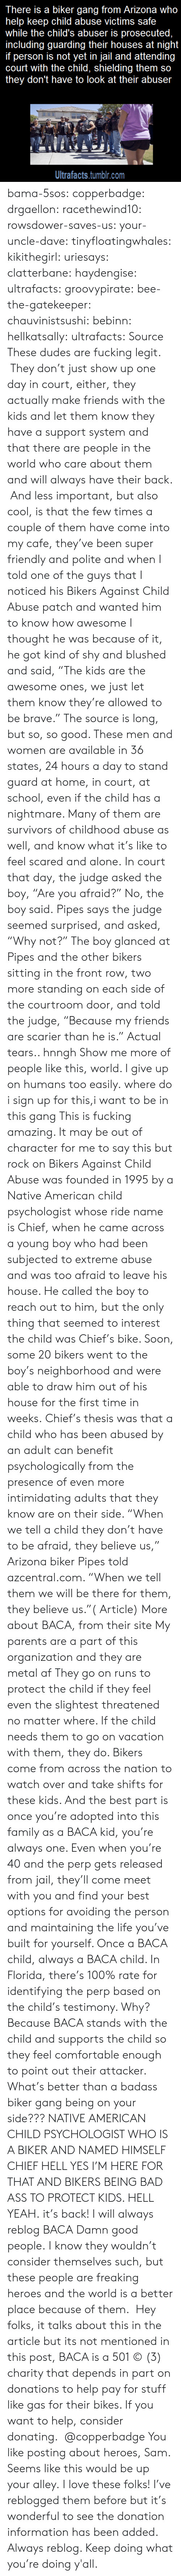 """Metal Af: There is a biker gang from Arizona who  help keep child abuse victims safe  while the child's abuser is prosecuted,  including guarding their houses at night  person is not yet in jail and attending  court with the child, shielding them so  they don't have to look at their abuser  Ultrafacts.tumblr.com bama-5sos: copperbadge:  drgaellon:  racethewind10:  rowsdower-saves-us:  your-uncle-dave:  tinyfloatingwhales:  kikithegirl:  uriesays:  clatterbane:  haydengise:  ultrafacts:  groovypirate:  bee-the-gatekeeper:  chauvinistsushi:  bebinn:  hellkatsally:  ultrafacts:  Source  These dudes are fucking legit. They don't just show up one day in court, either, they actually make friends with the kids and let them know they have a support system and that there are people in the world who care about them and will always have their back. And less important, but also cool, is that the few times a couple of them have come into my cafe, they've been super friendly and polite and when I told one of the guys that I noticed his Bikers Against Child Abuse patch and wanted him to know how awesome I thought he was because of it, he got kind of shy and blushed and said, """"The kids are the awesome ones, we just let them know they're allowed to be brave.""""  The source is long, but so, so good. These men and women are available in 36 states, 24 hours a day to stand guard at home, in court, at school, even if the child has a nightmare. Many of them are survivors of childhood abuse as well, and know what it's like to feel scared and alone.  In court that day, the judge asked the boy, """"Are you afraid?"""" No, the boy said. Pipes says the judge seemed surprised, and asked, """"Why not?"""" The boy glanced at Pipes and the other bikers sitting in the front row, two more standing on each side of the courtroom door, and told the judge, """"Because my friends are scarier than he is.""""   Actual tears.. hnngh  Show me more of people like this, world. I give up on humans too easily.  where do i sign up f"""